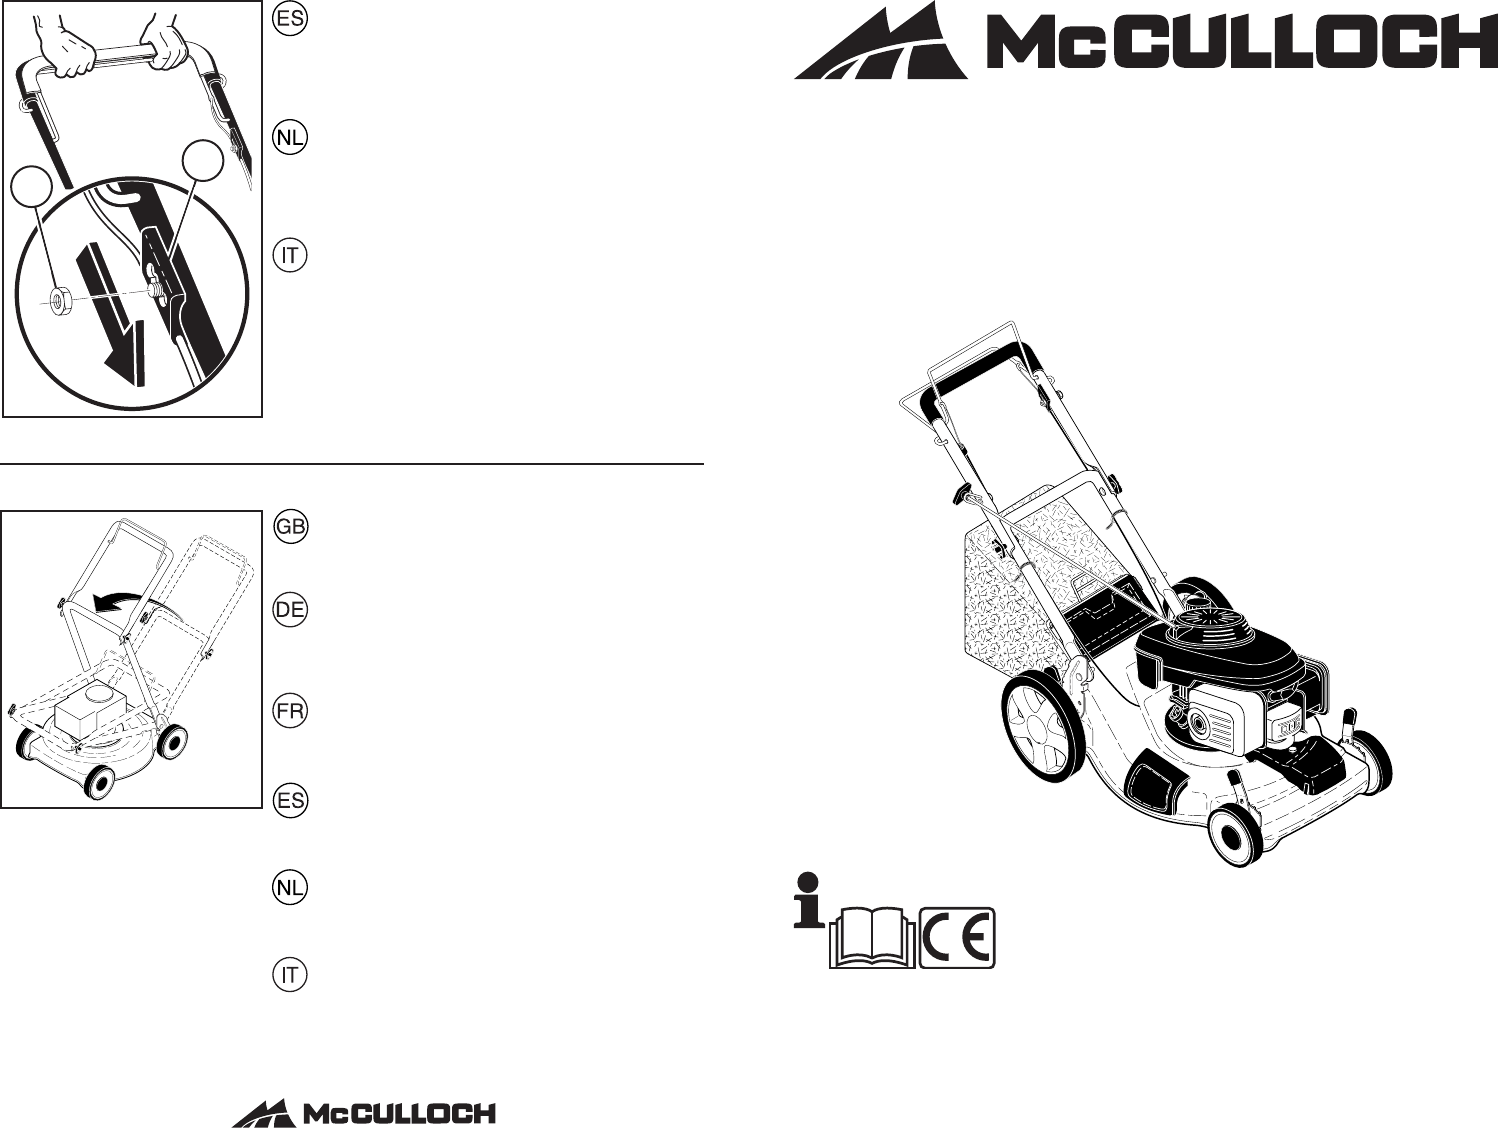 McCulloch Lawn Mower EDITION 1XXL User Guide